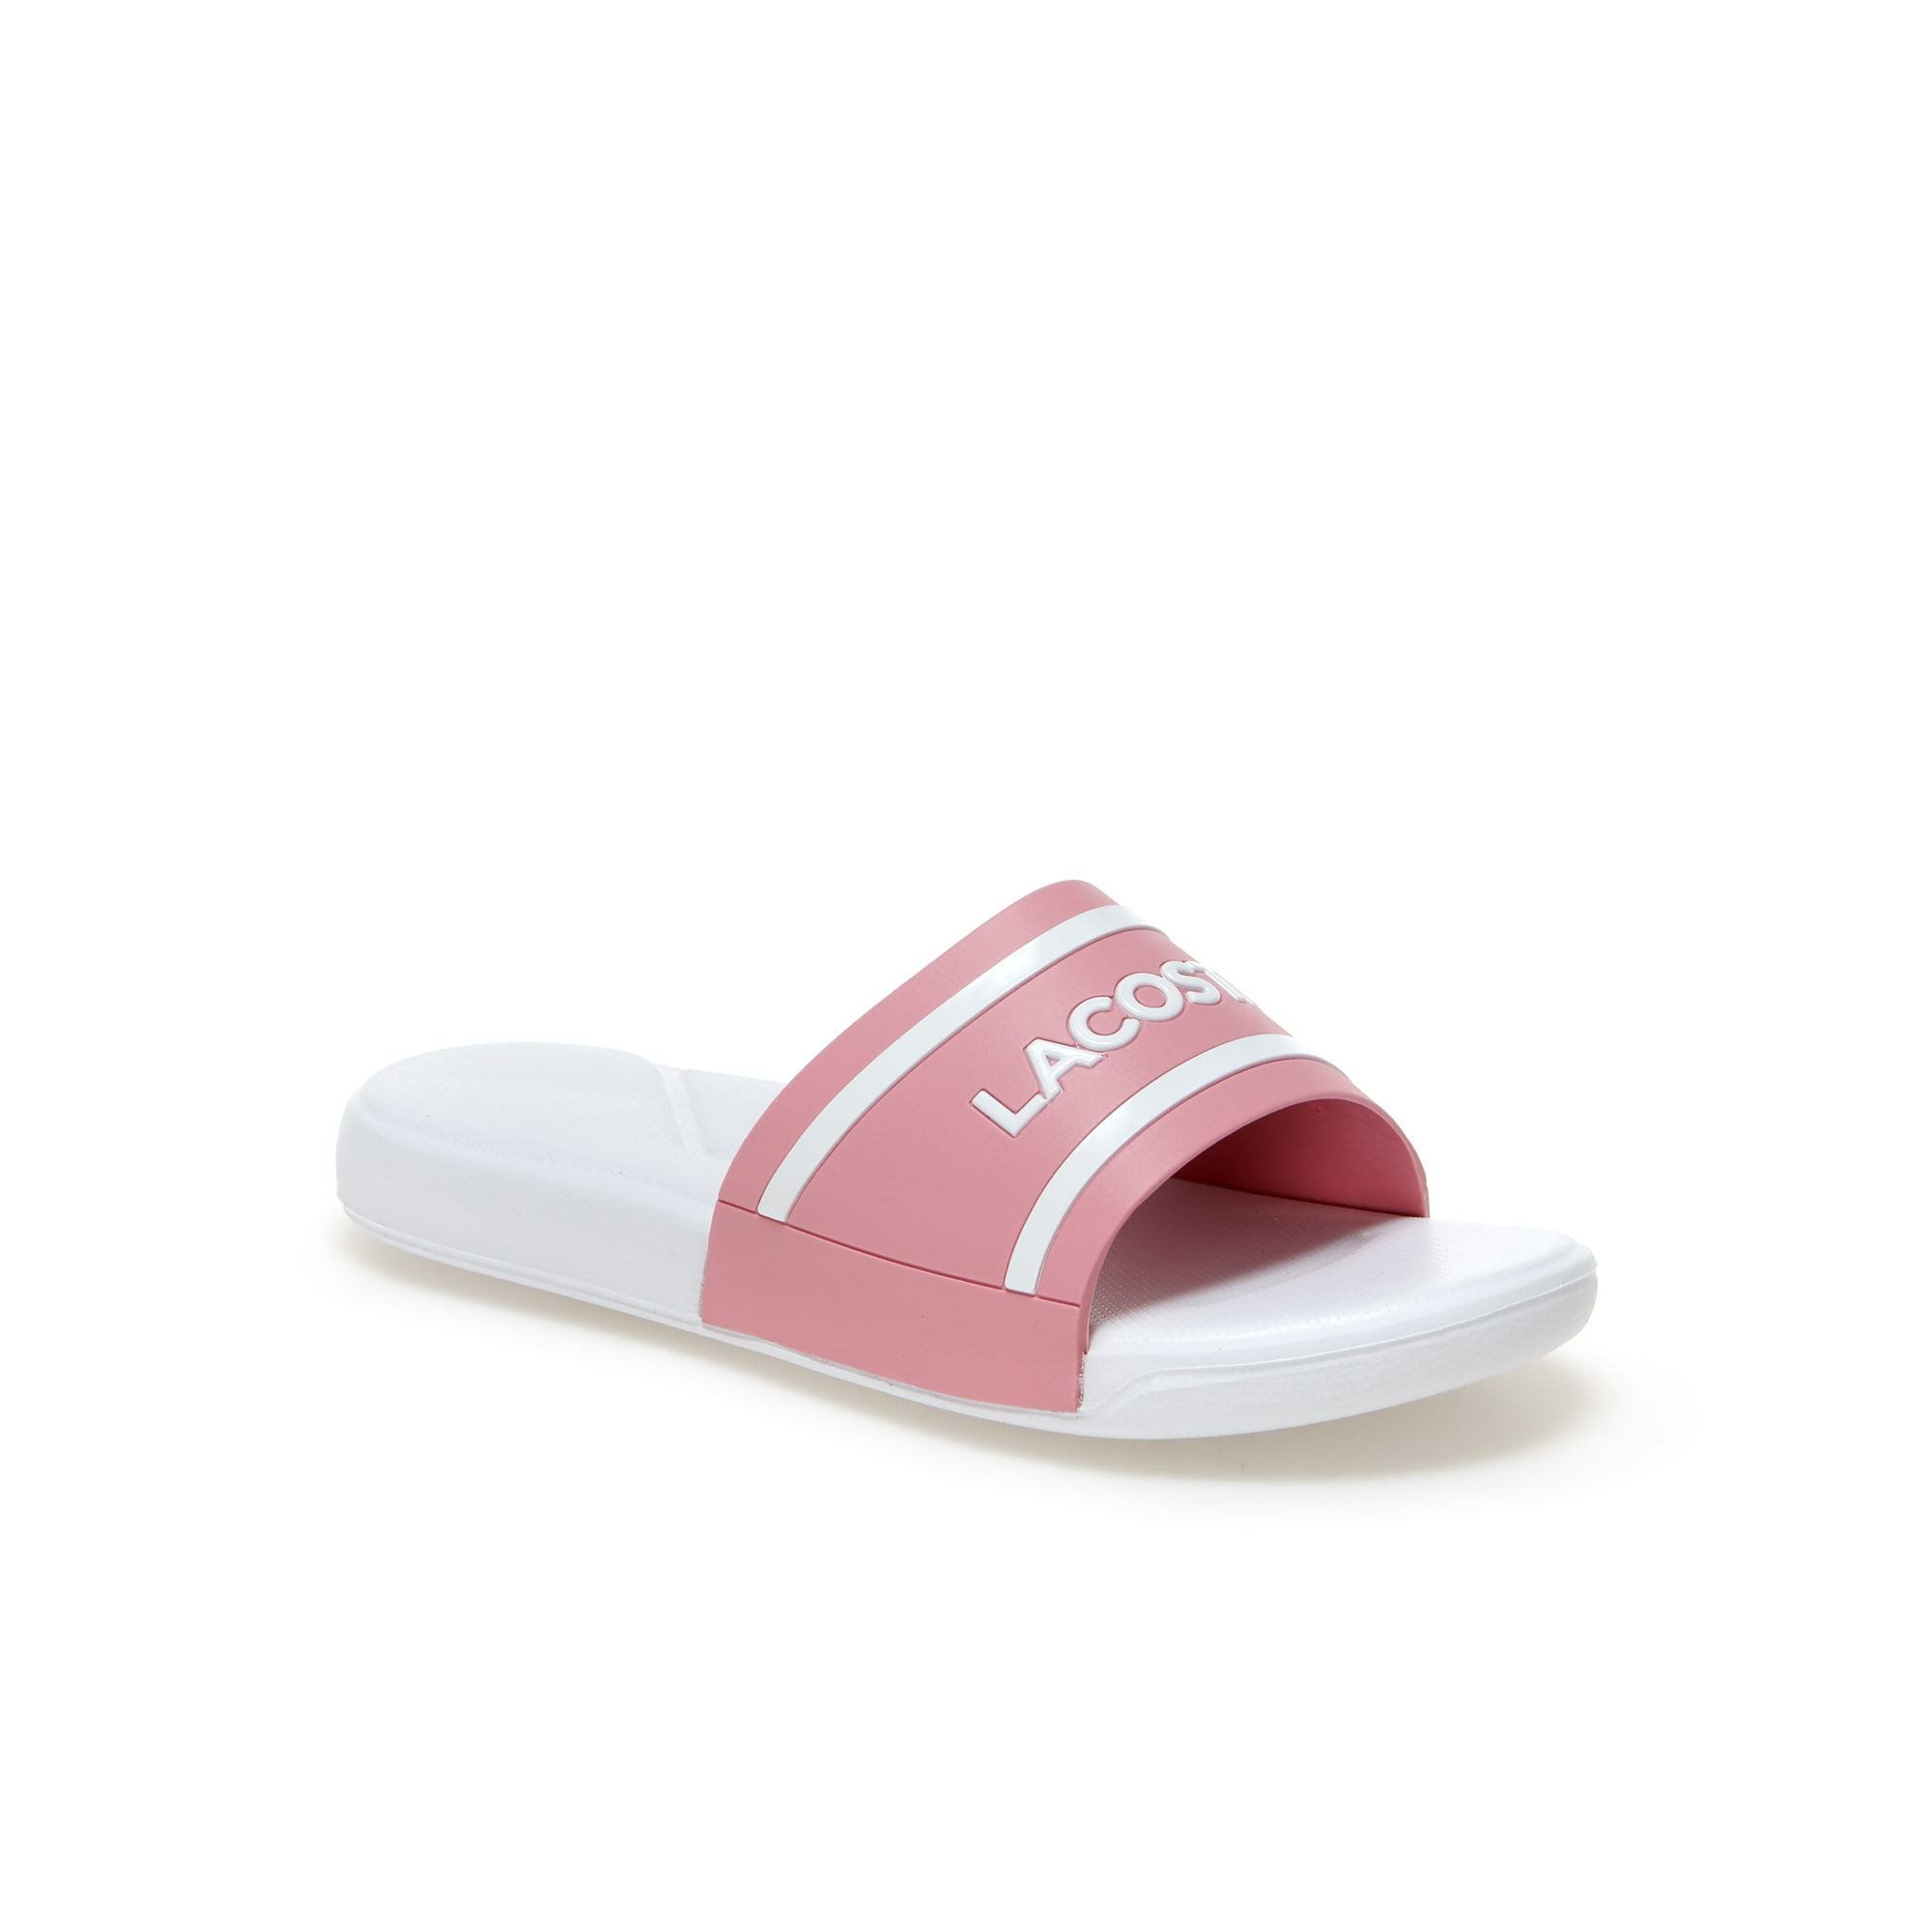 Infant Synthetic L.30 Slides